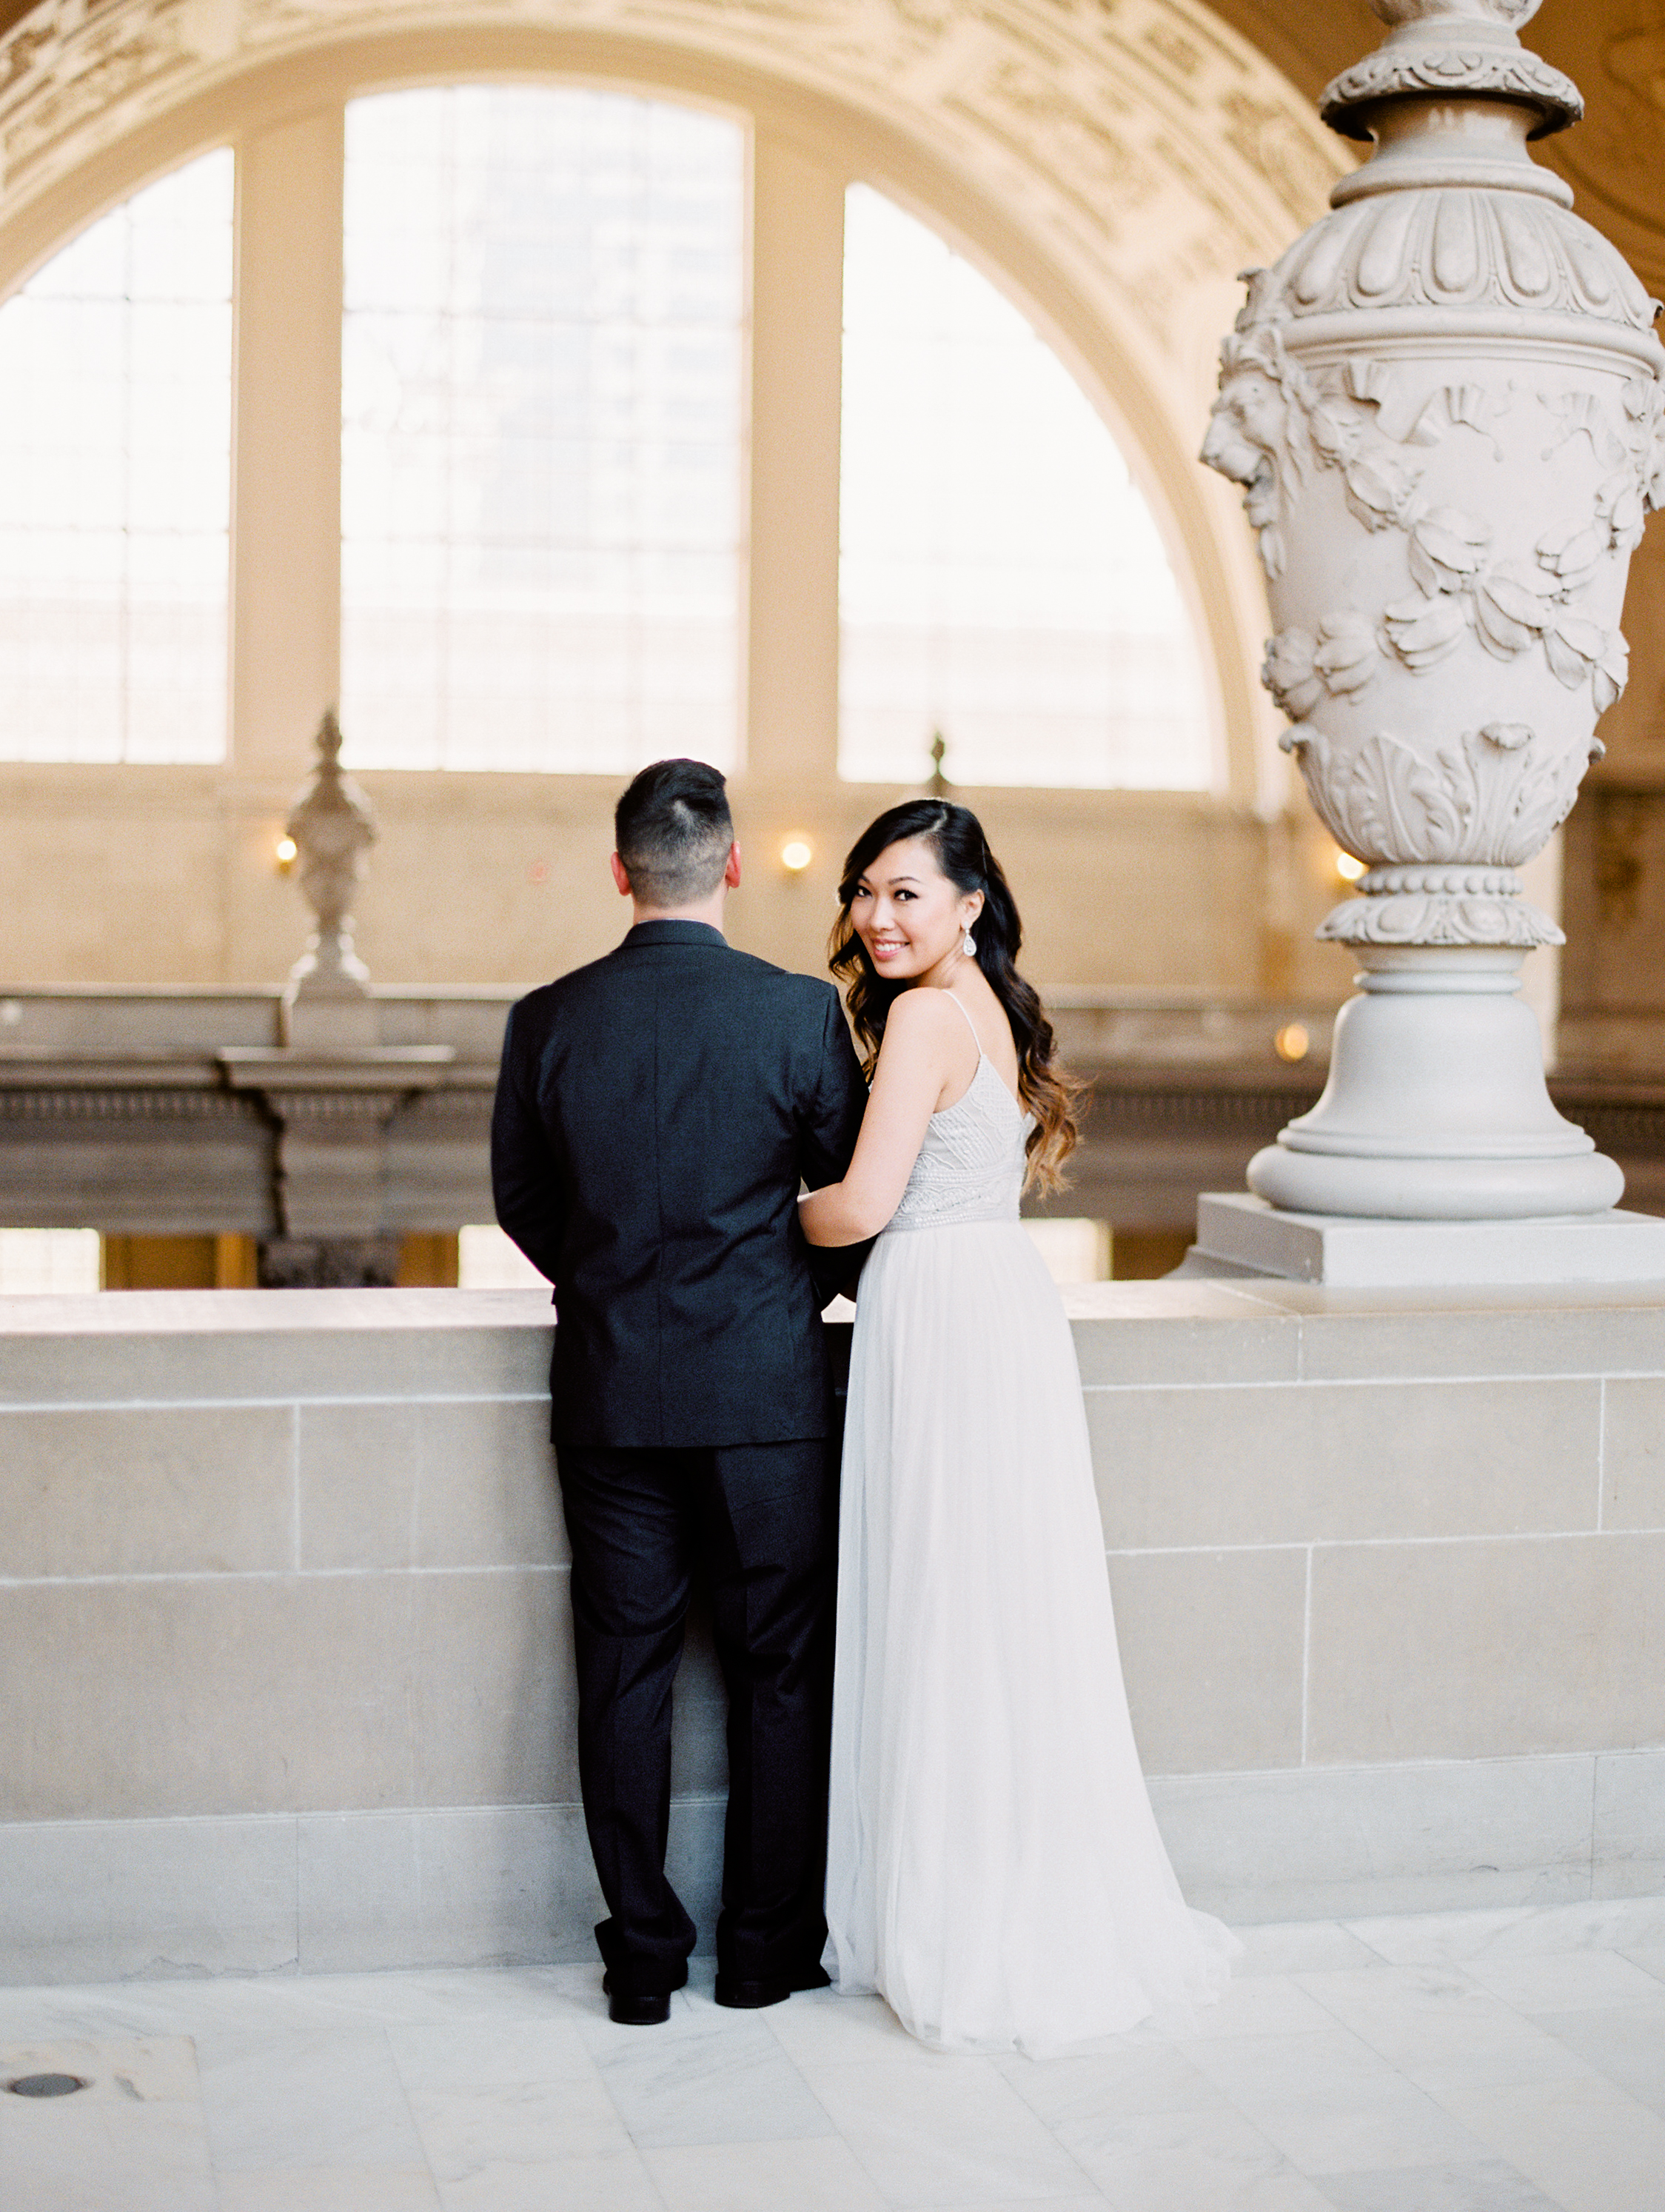 san+francisco+engagement+film+photography-107.jpg